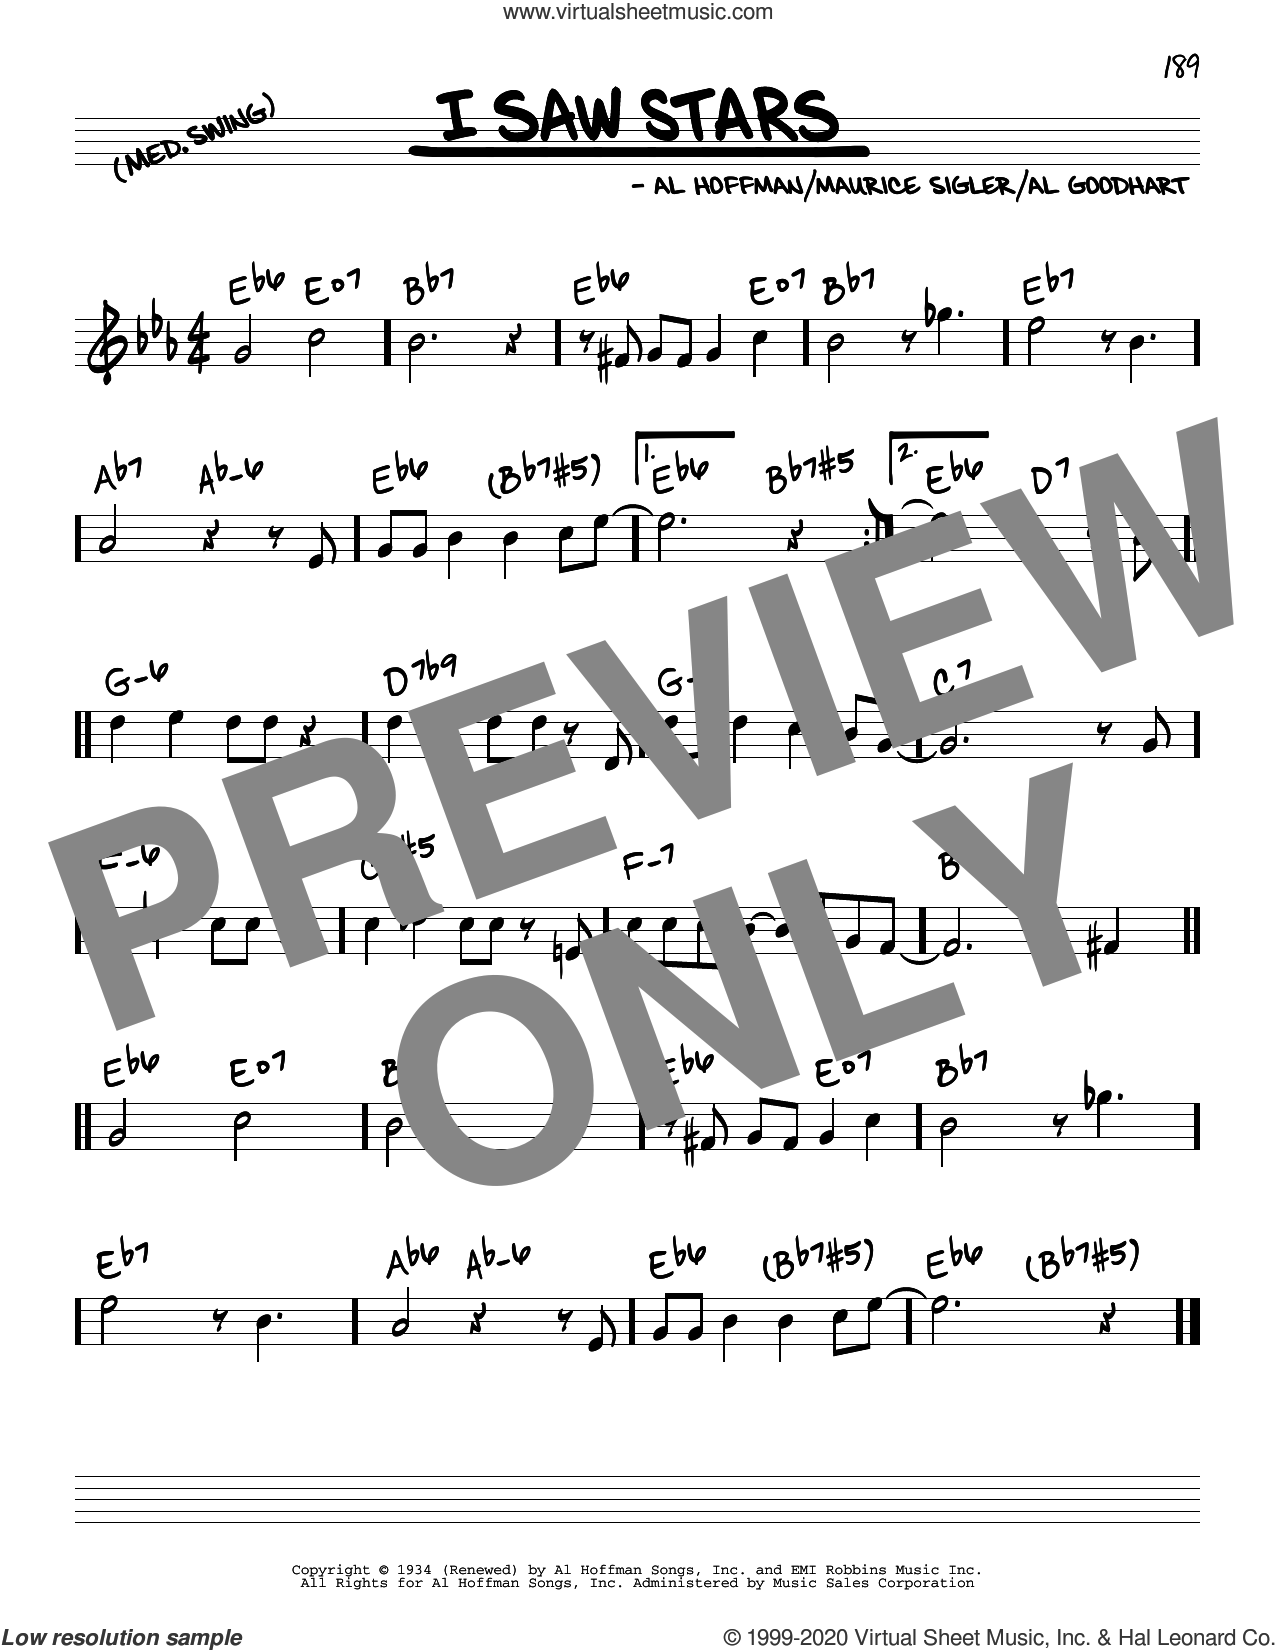 I Saw Stars sheet music for voice and other instruments (real book) by Freddie Martin and His Orchestra, Al Goodhart, Al Hoffman and Maurice Sigler, intermediate skill level